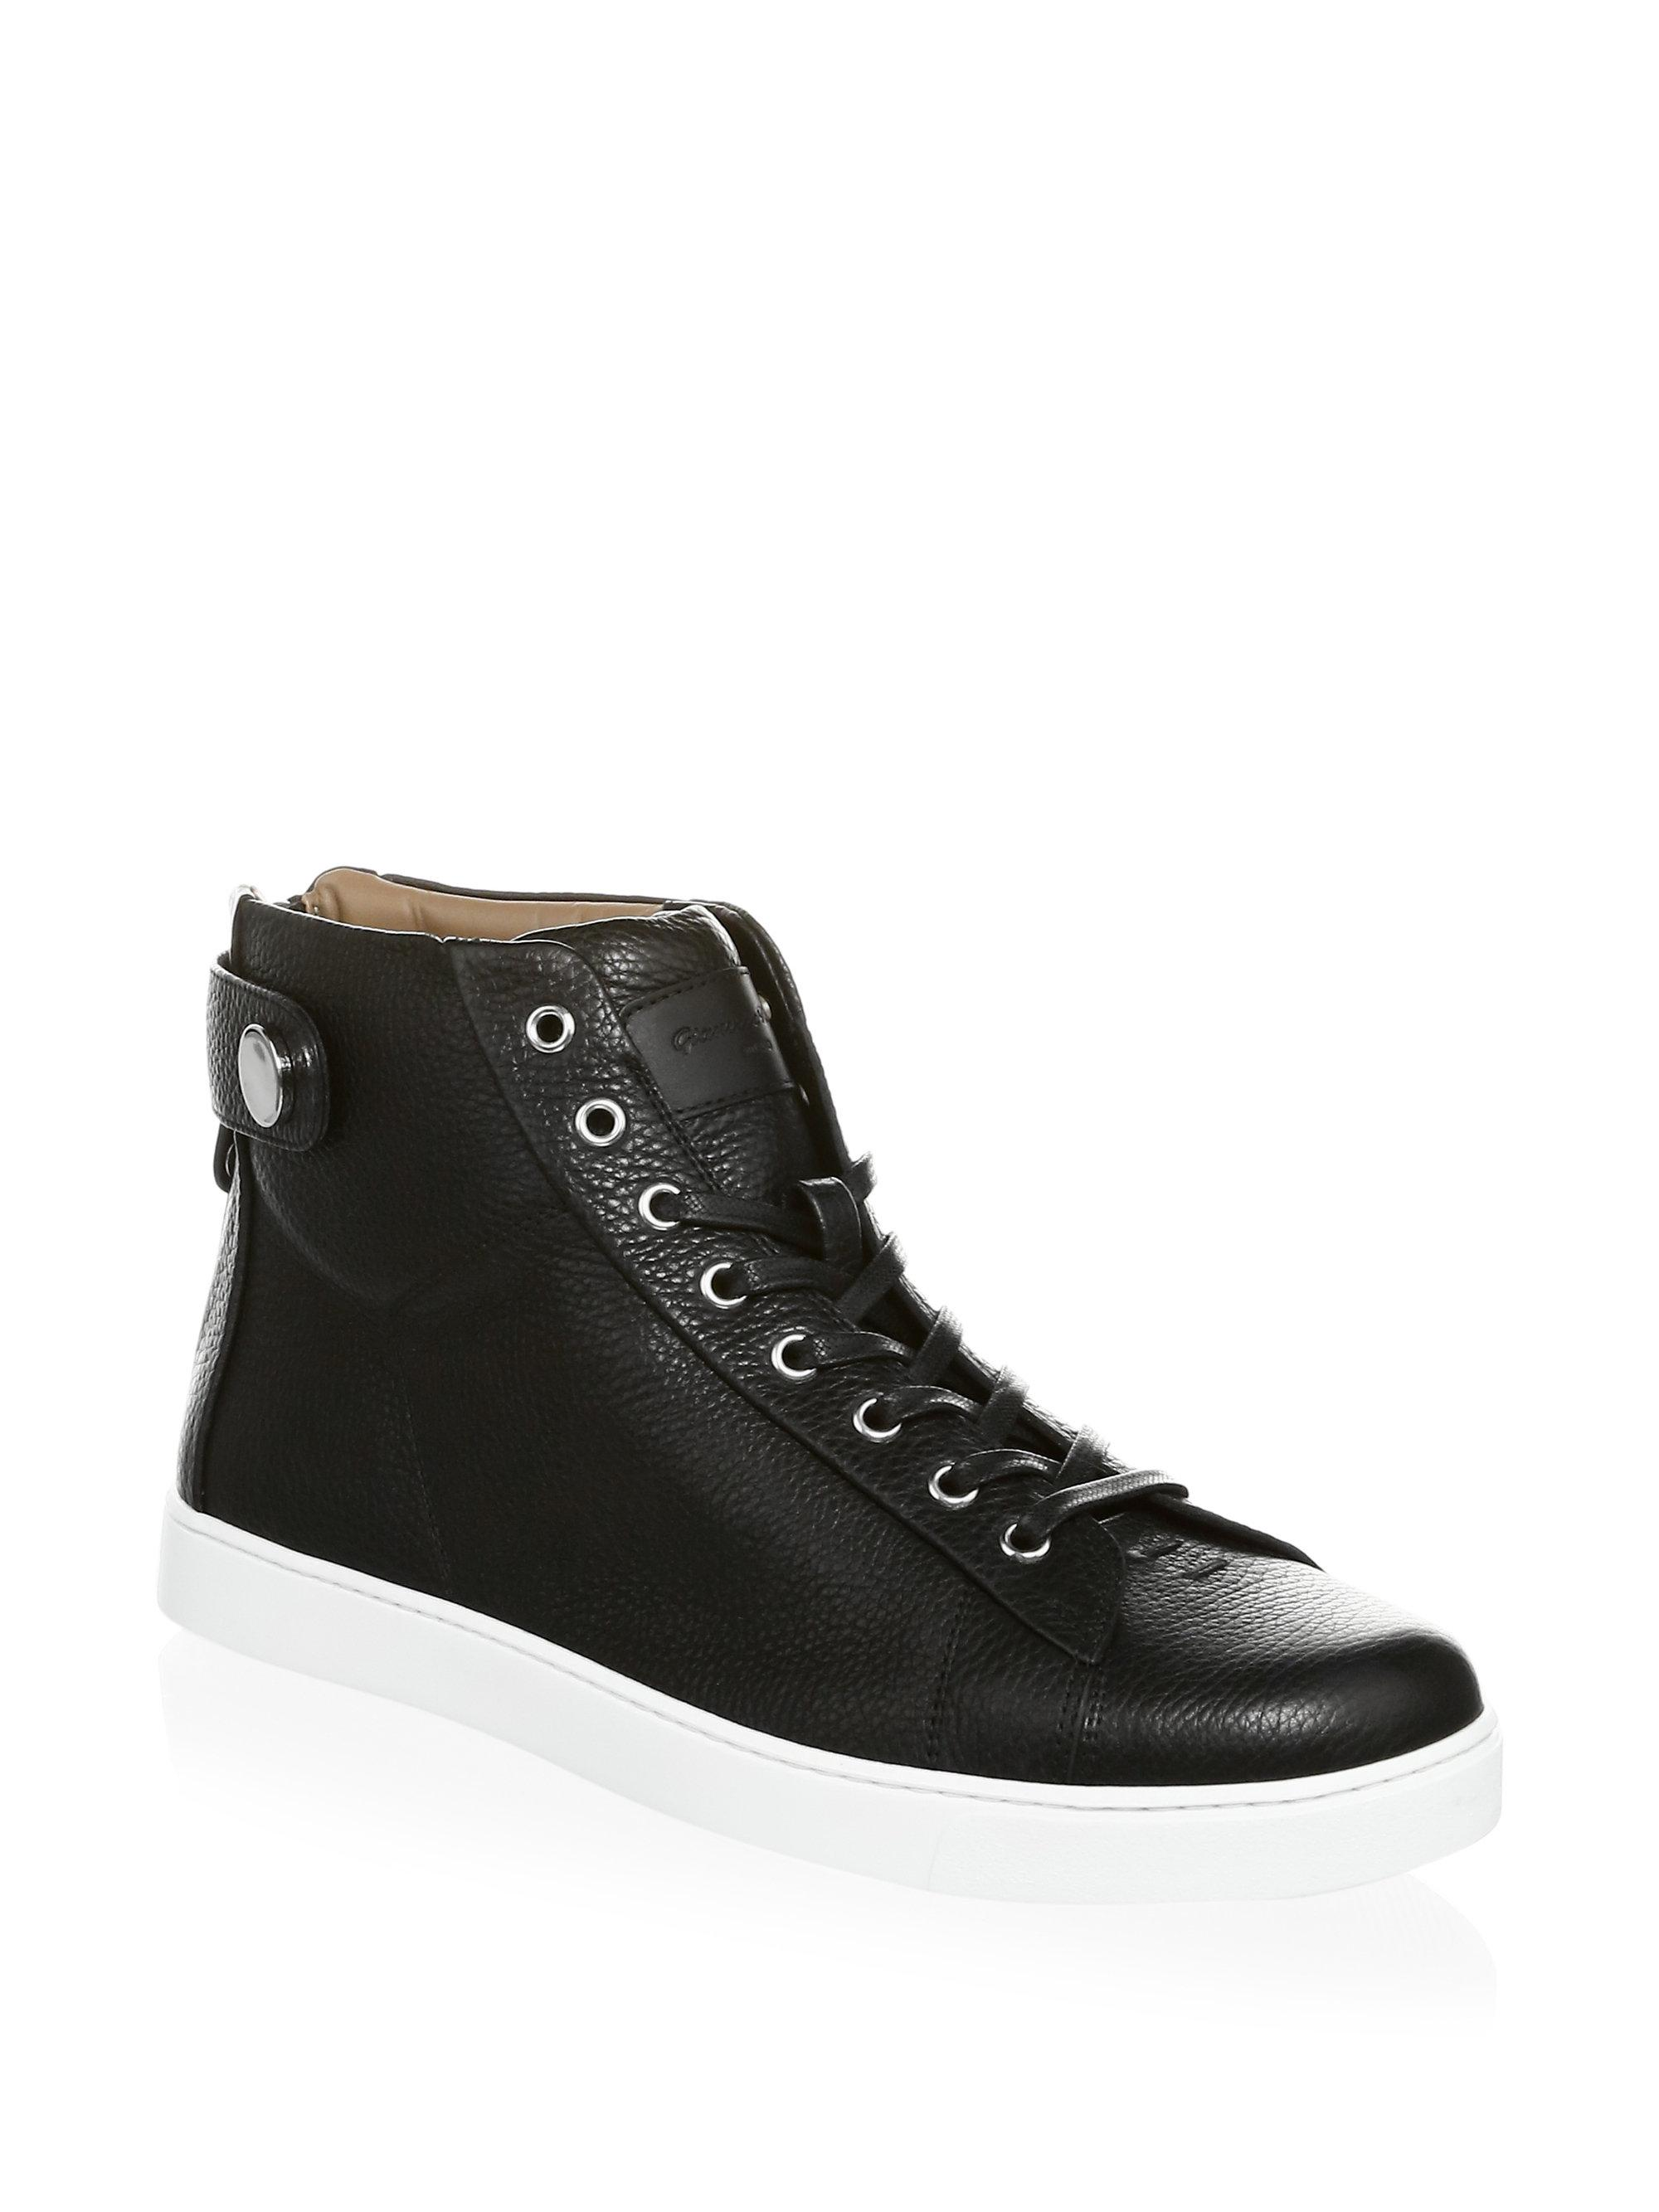 Gianvito Rossi Grain Leather Strap Mid Sneakers N4xc6